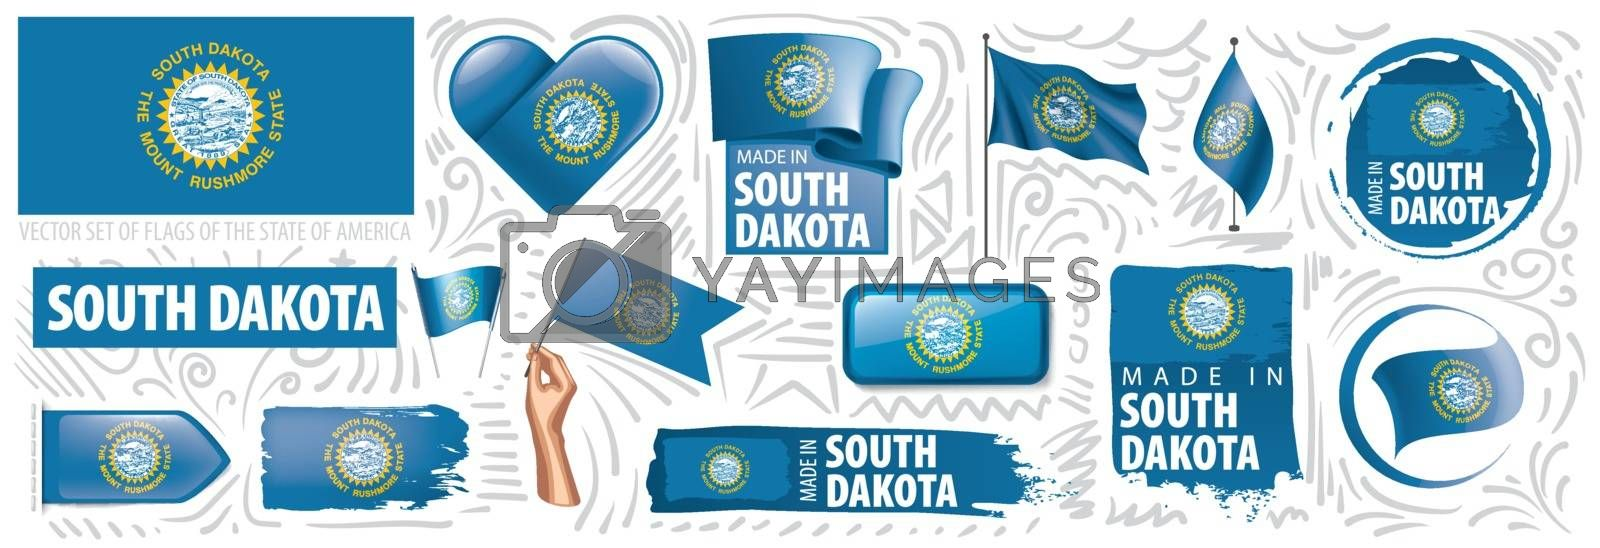 Vector set of flags of the American state of South Dakota in different designs.